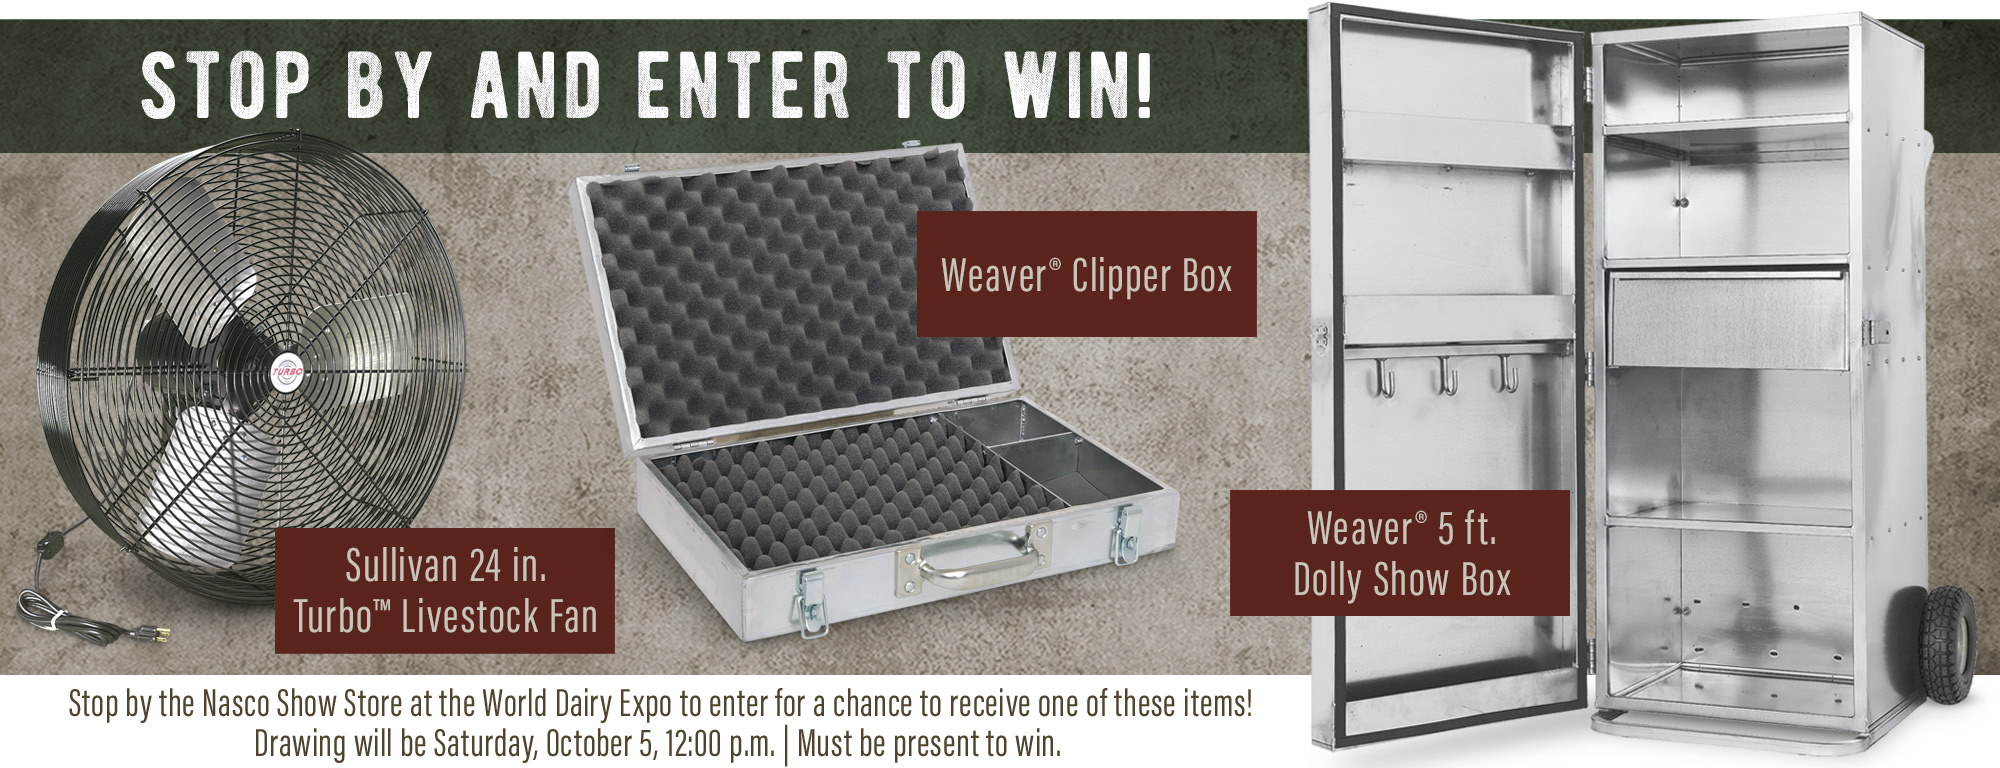 Stop by the Nasco Show Store at the World Dairy Expo to enter for a chance to receive one of these items! Drawing will be Saturday, October 5, 12:00 p.m. Must be present to win.